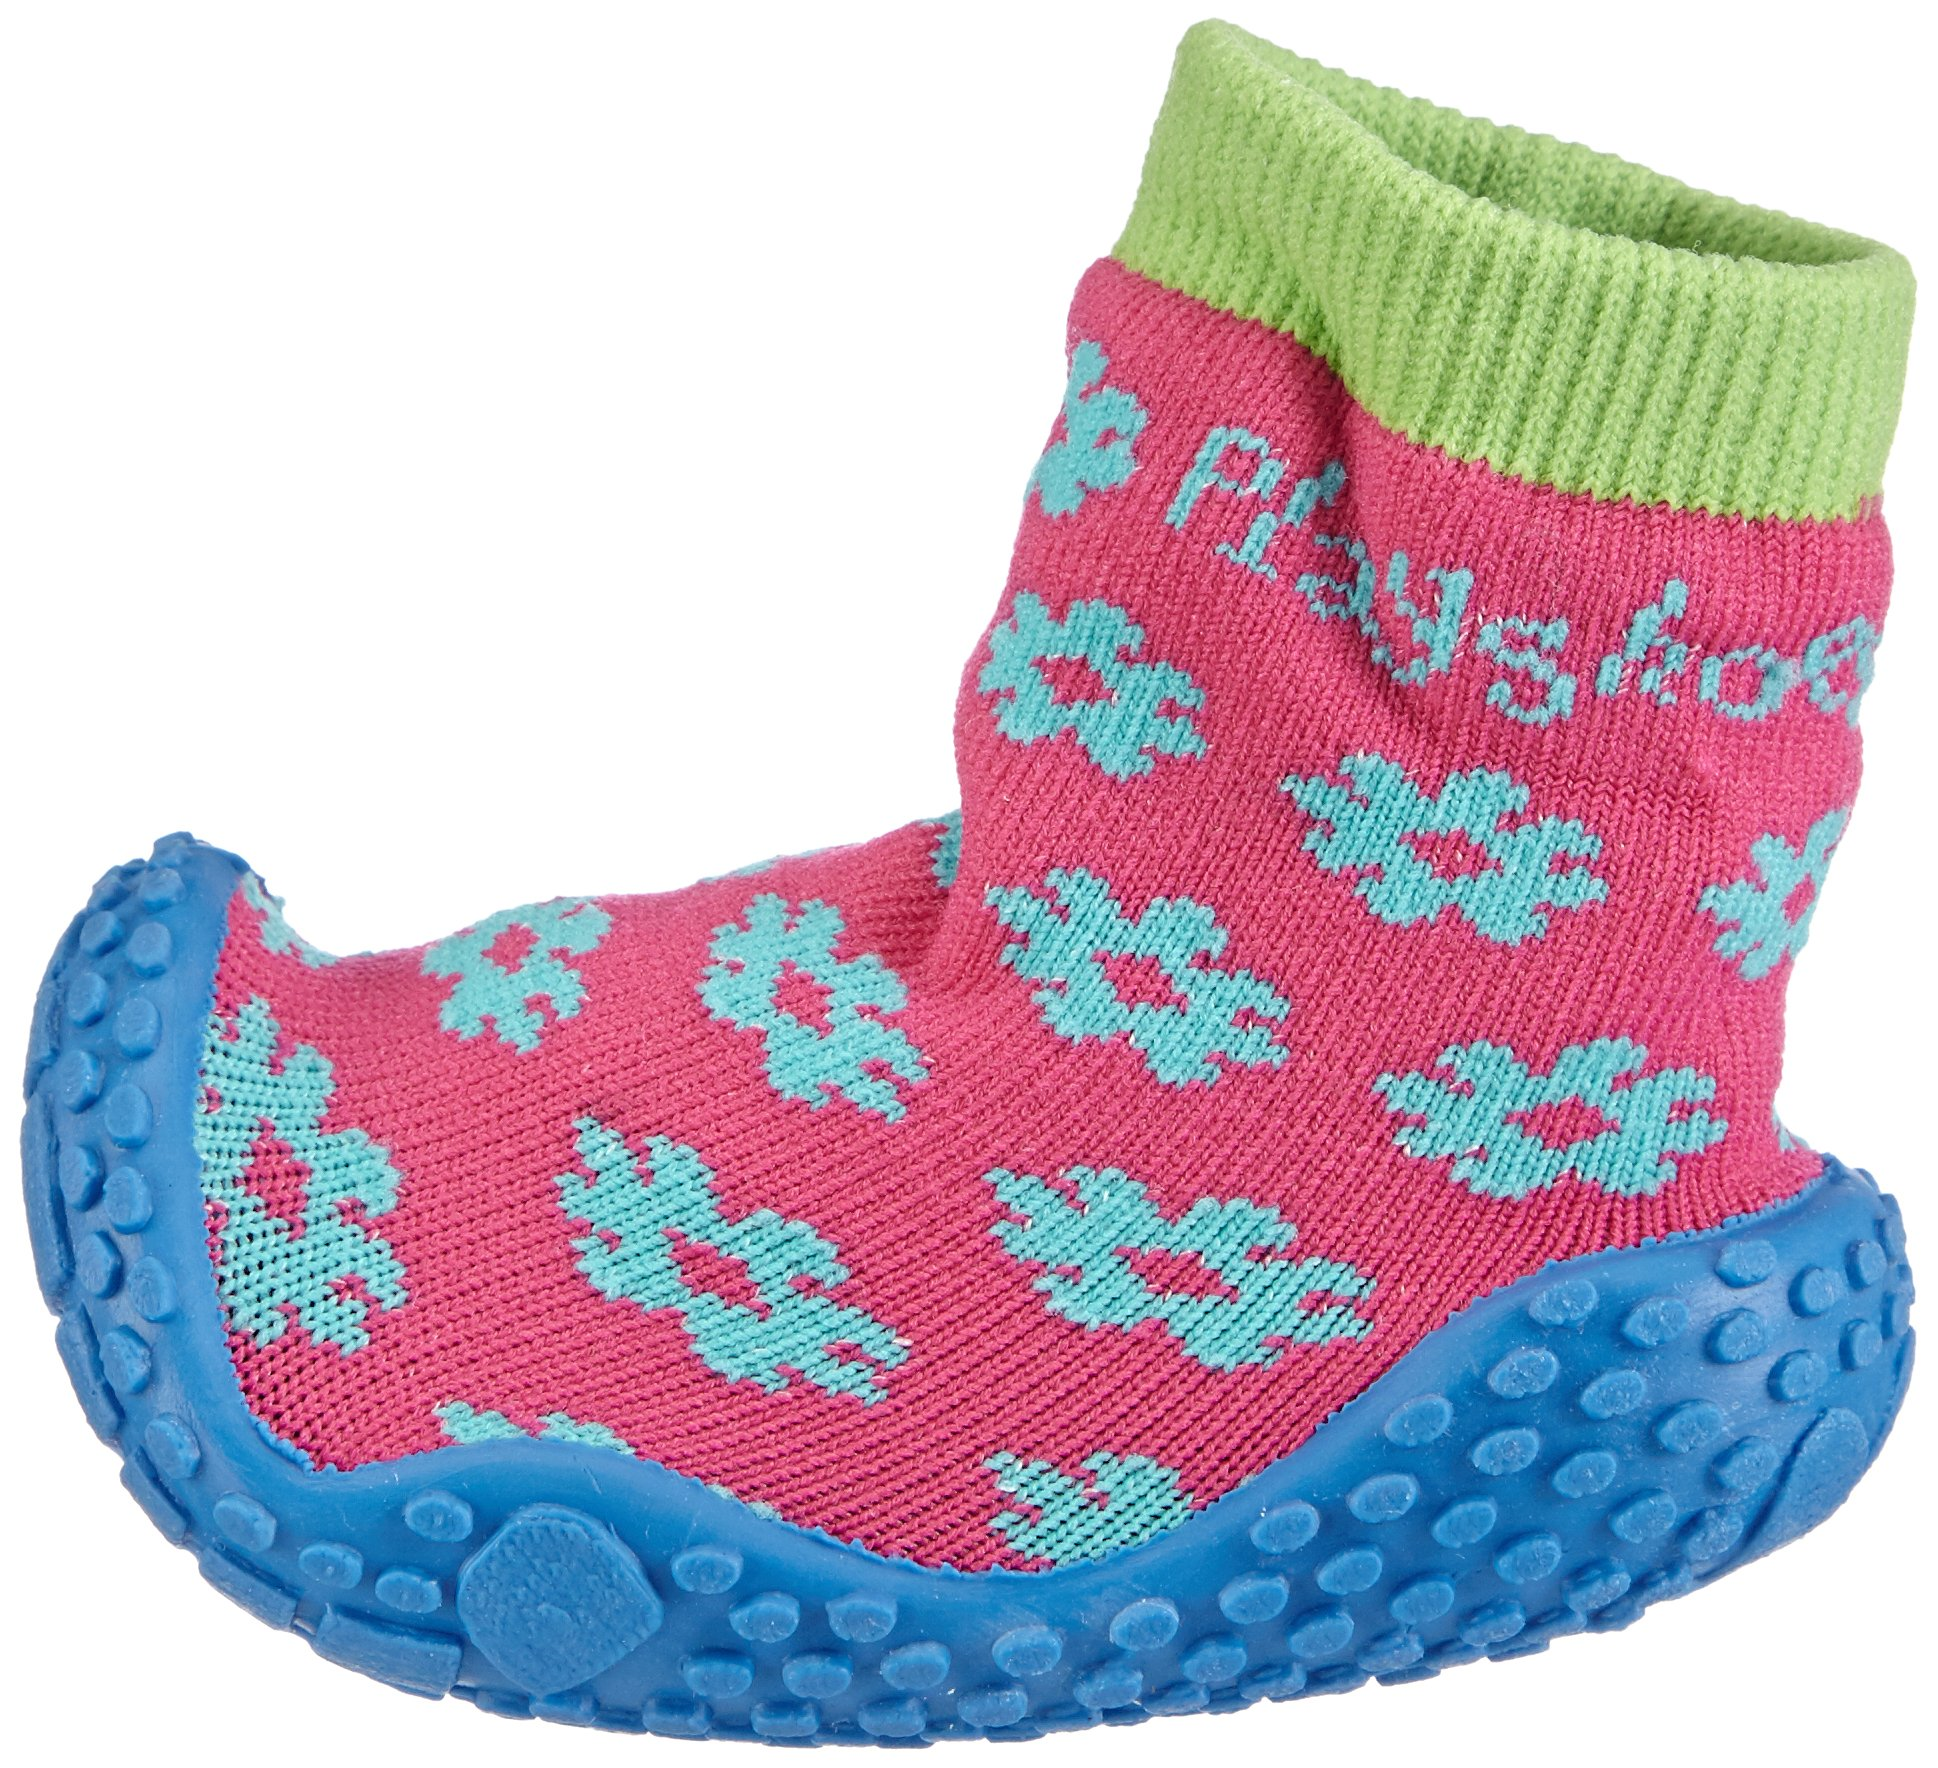 Playshoes Girls Flower Collection Rubber Aqua Swim/Beach Shoes (4.5 M US Toddler) by Playshoes (Image #5)